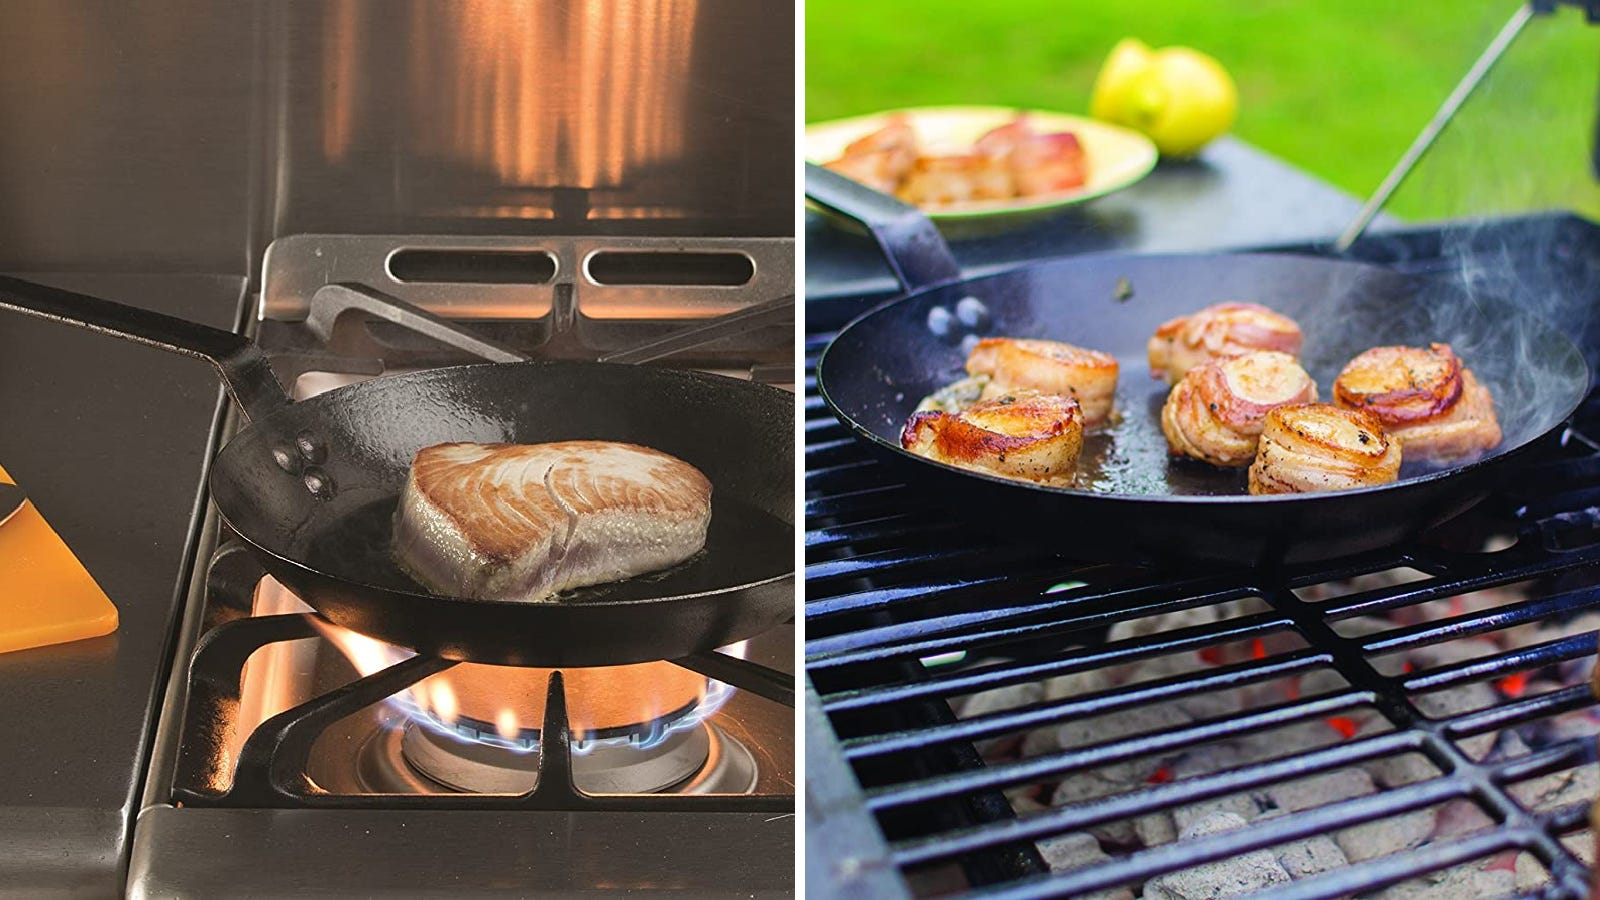 Two images featuring the Lodge carbon steel skillet. The left image features someone searing a tuna steak using the skillet and the right image features someone cooking bacon-wrapped scallops over a grill using the skillet.